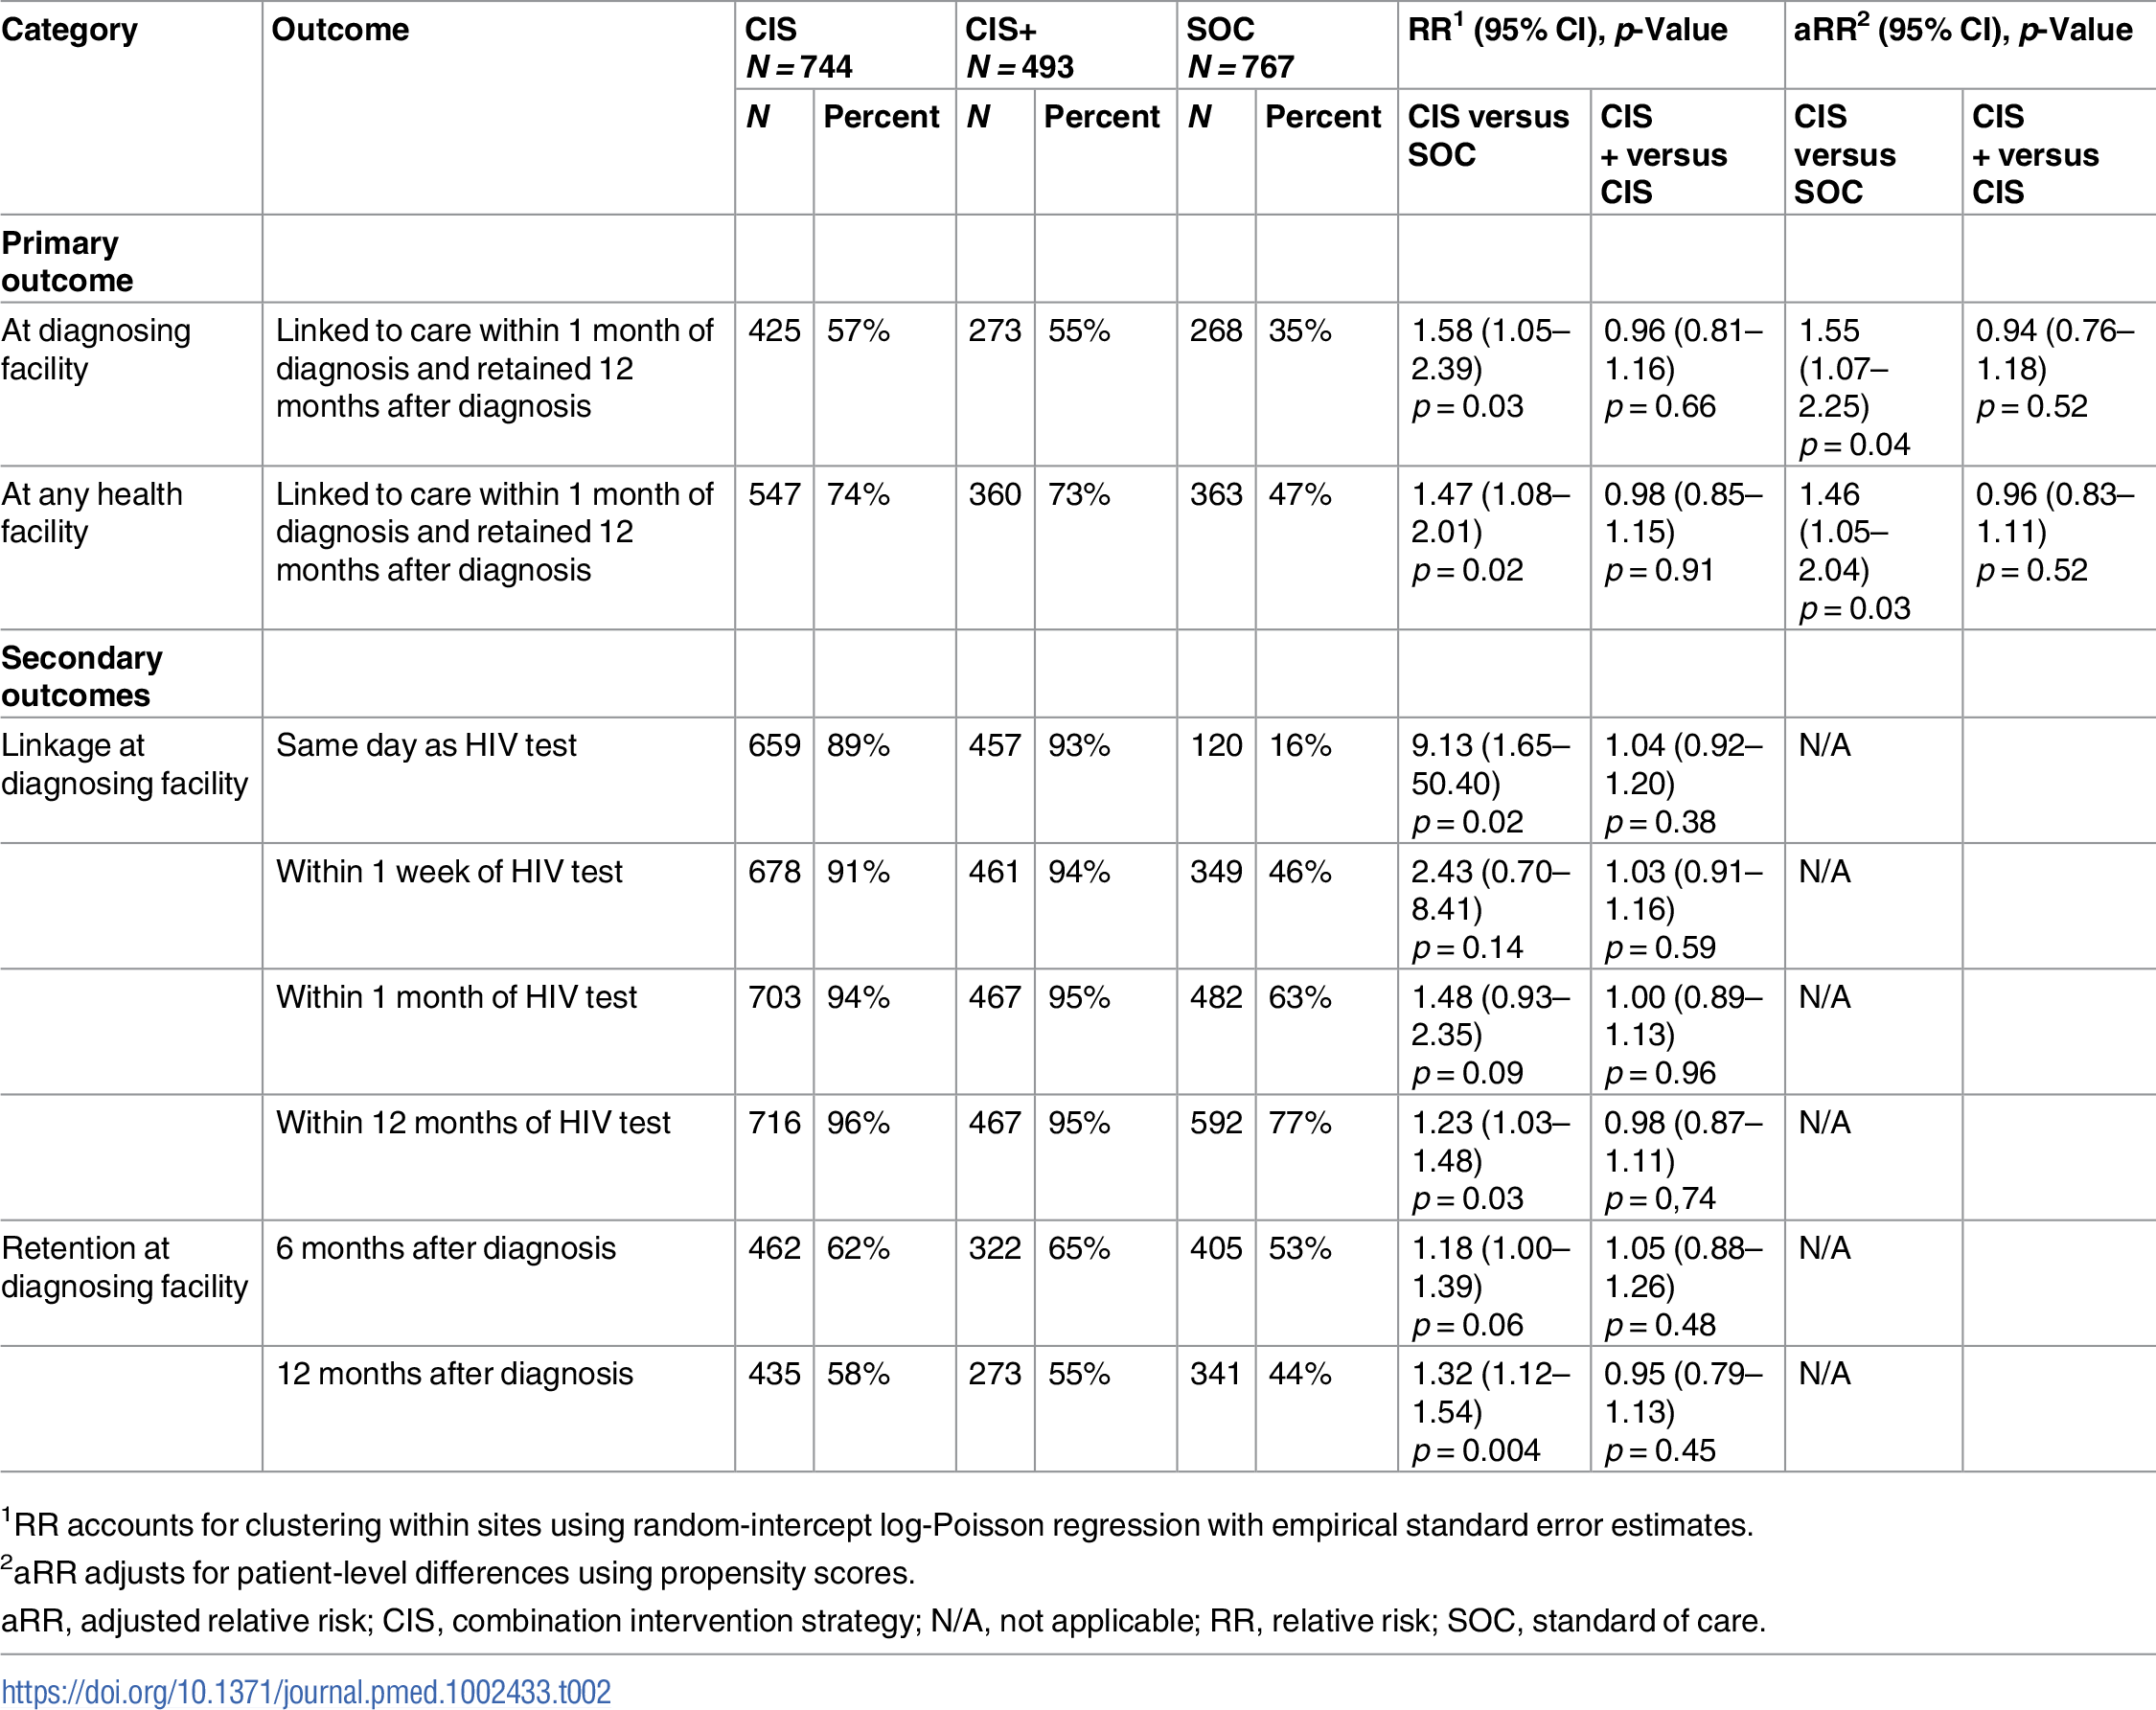 Linkage to and retention in HIV care: CIS versus SOC and CIS+ versus CIS.